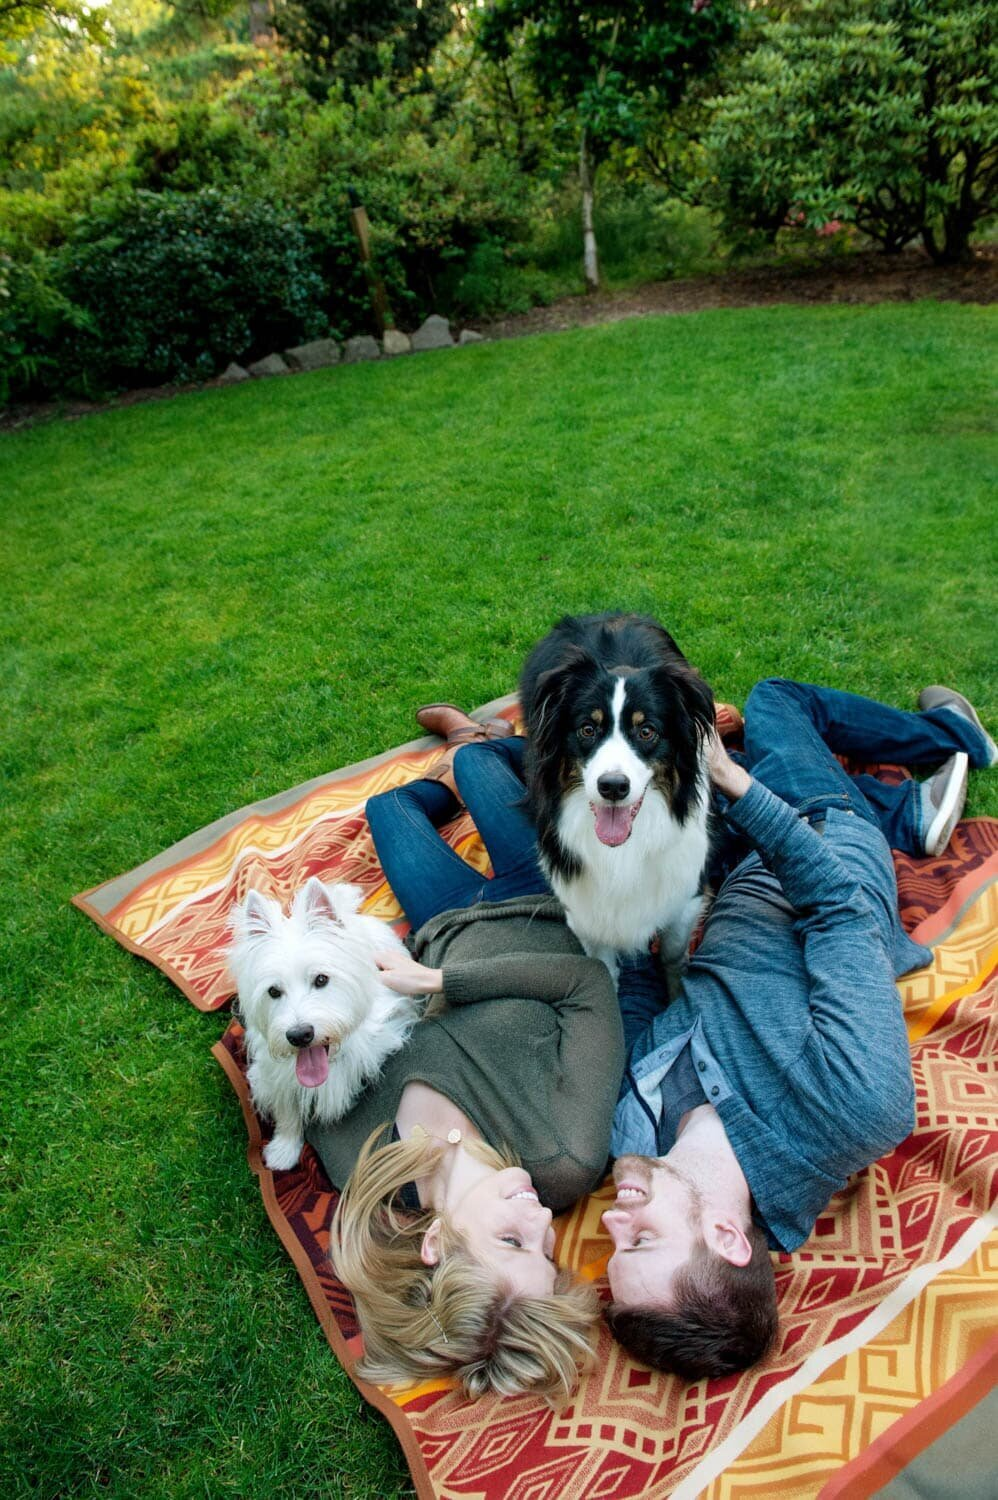 an engaged couple lay on a colorful blanket with their two dogs during their engagement session